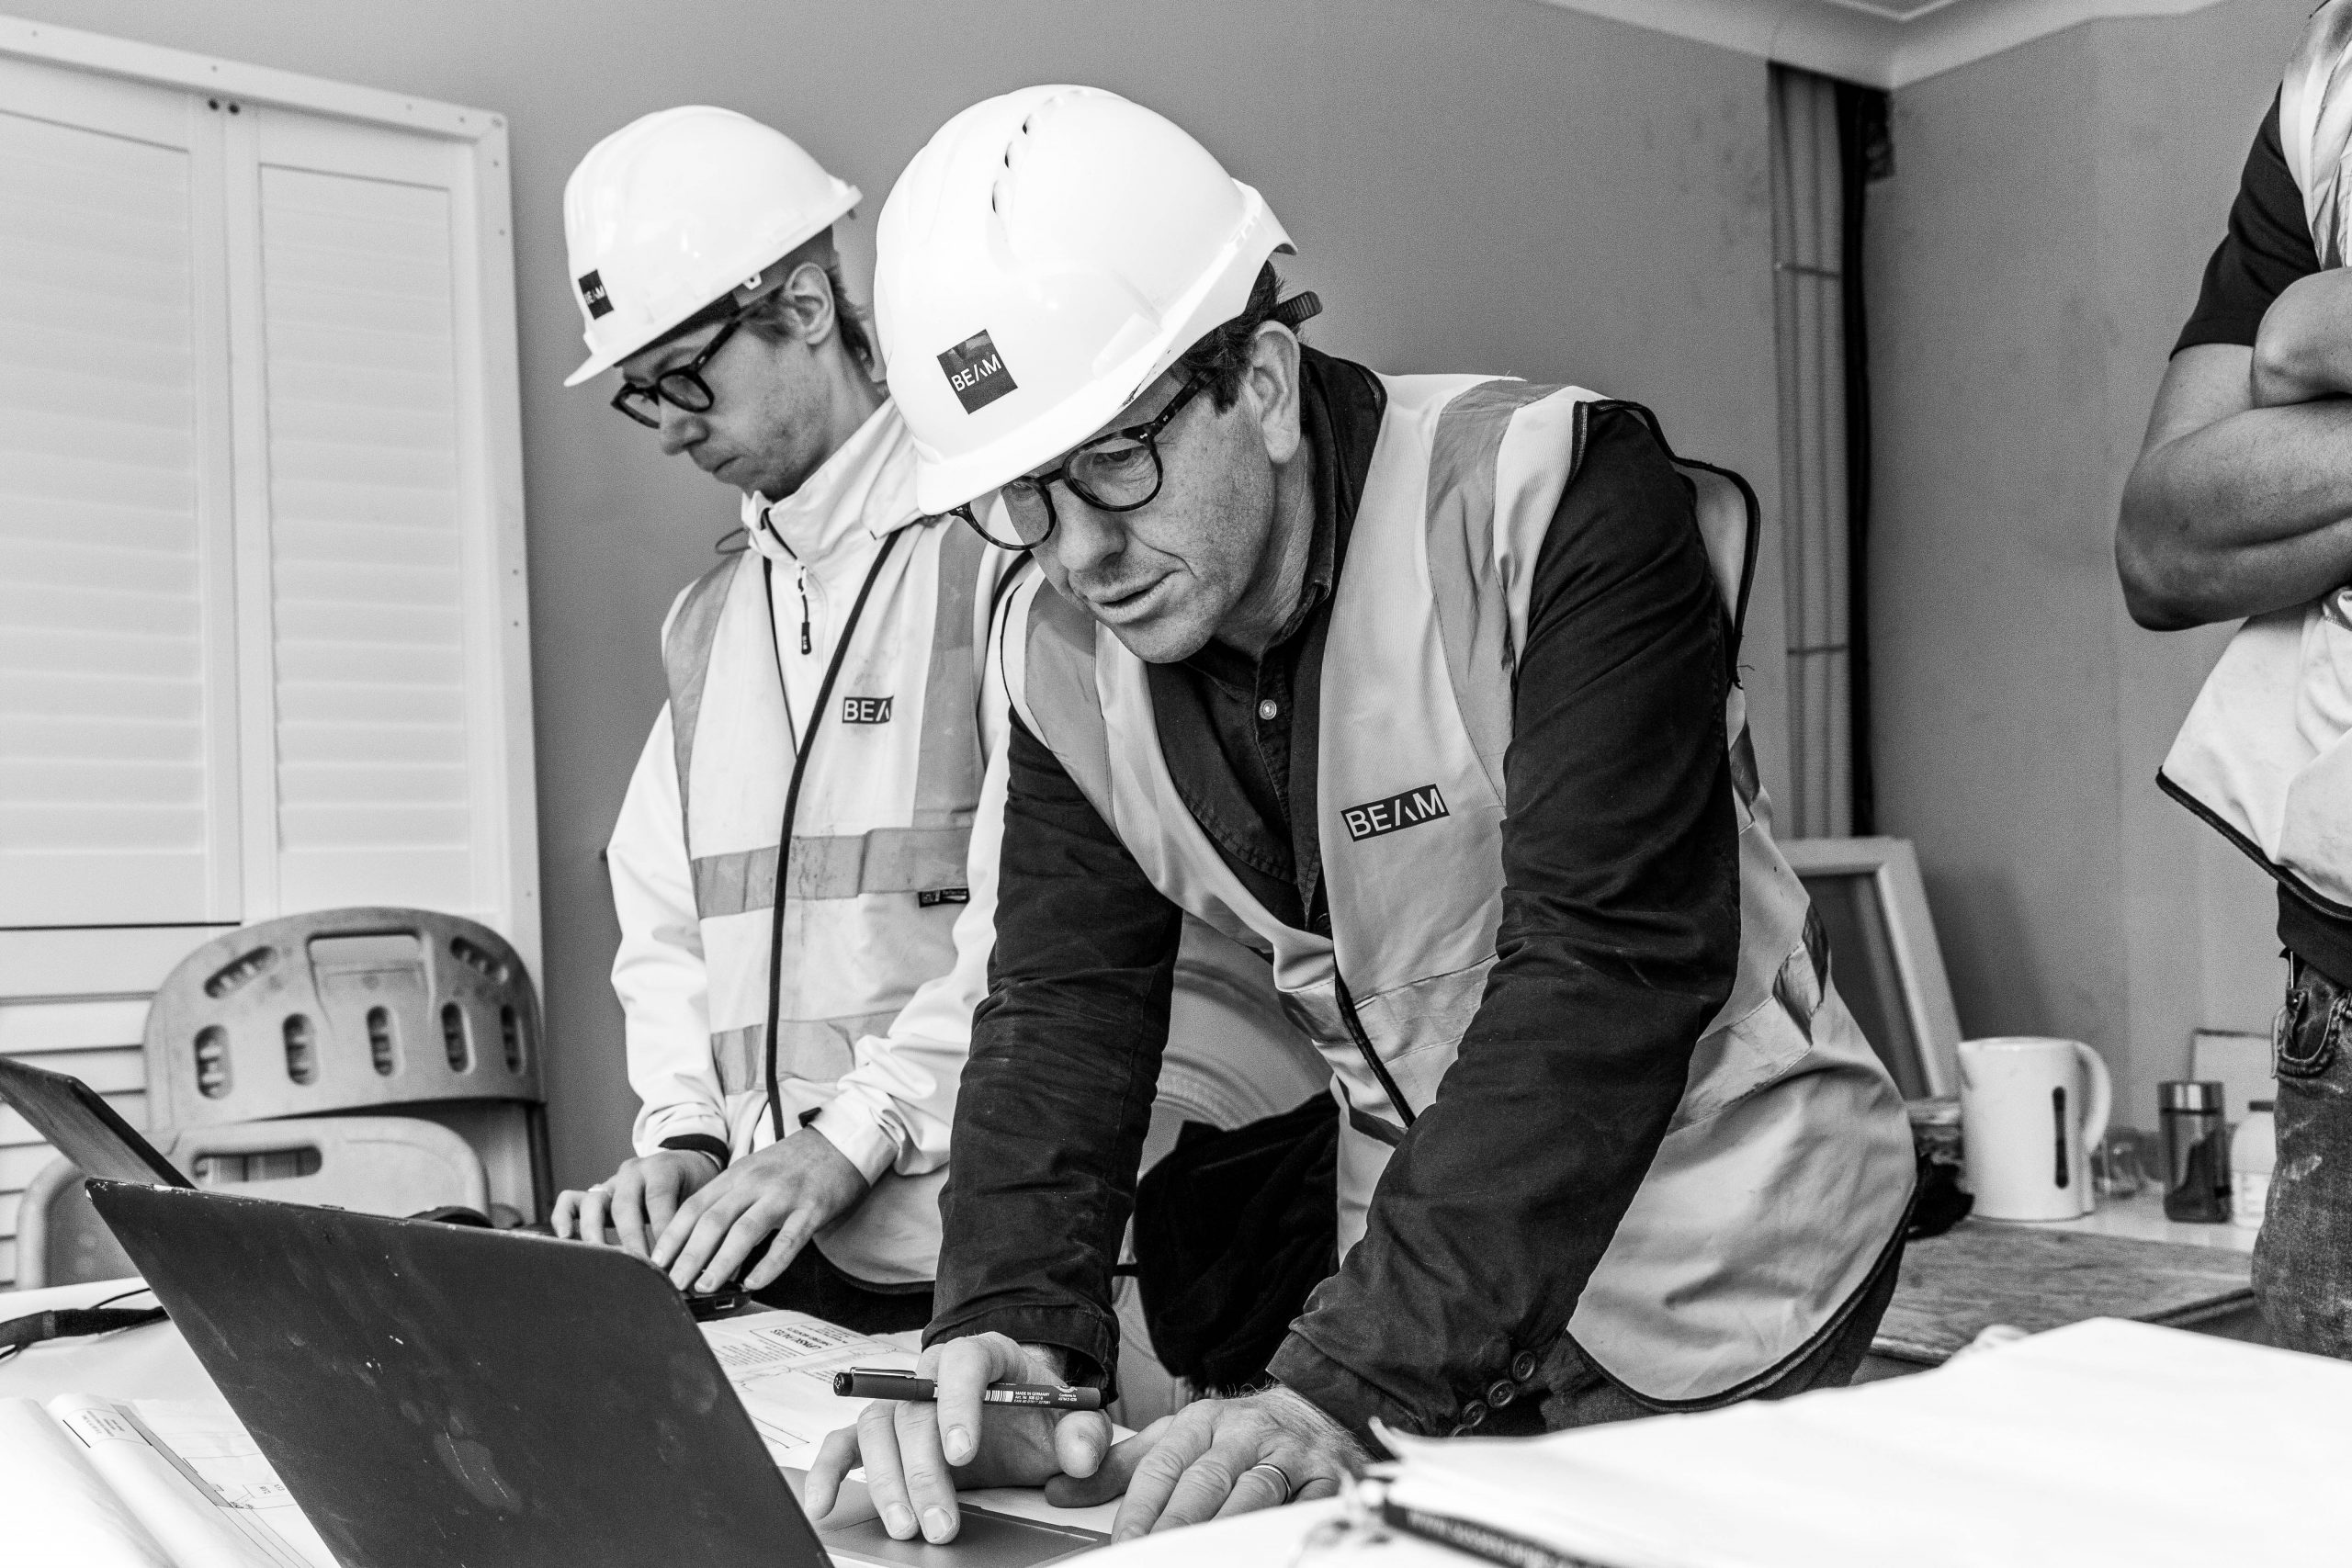 CALL FOR CONSTRUCTION FIRMS TO HARNESS TECHNOLOGY